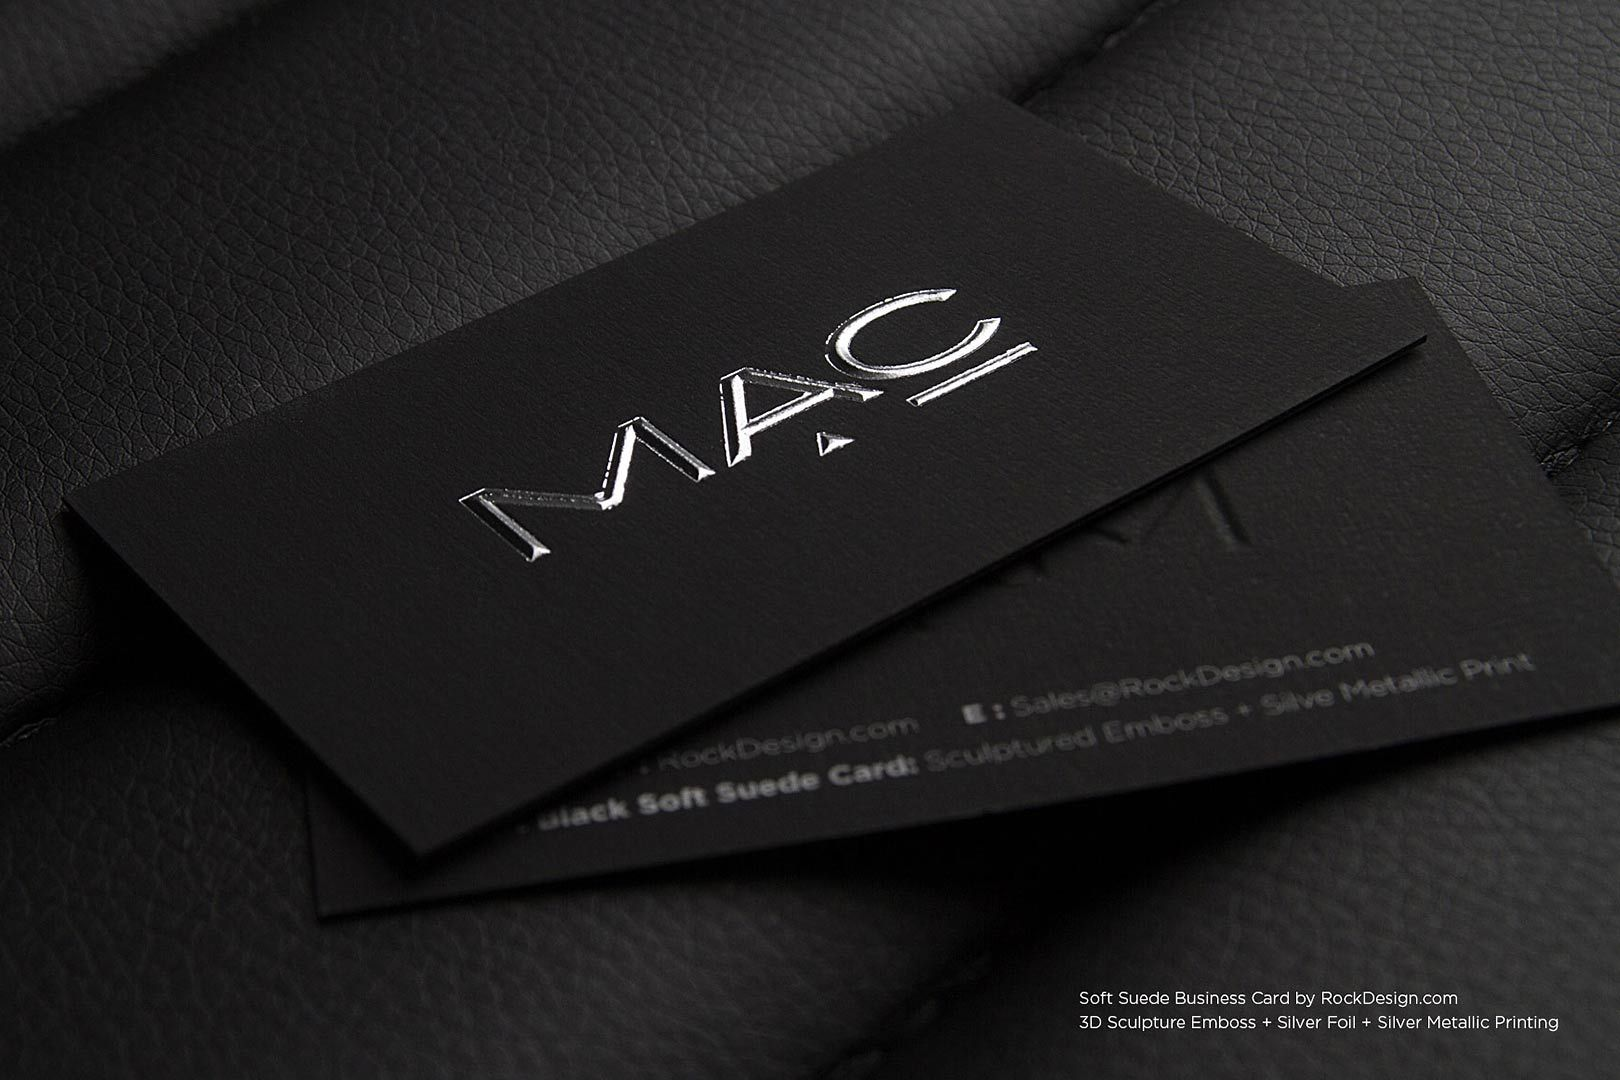 Black foil stamped best luxury business card design sentinel black foil stamped best luxury business card design sentinel surveillance rockdesign luxury business card printing business cards pinterest luxury magicingreecefo Gallery